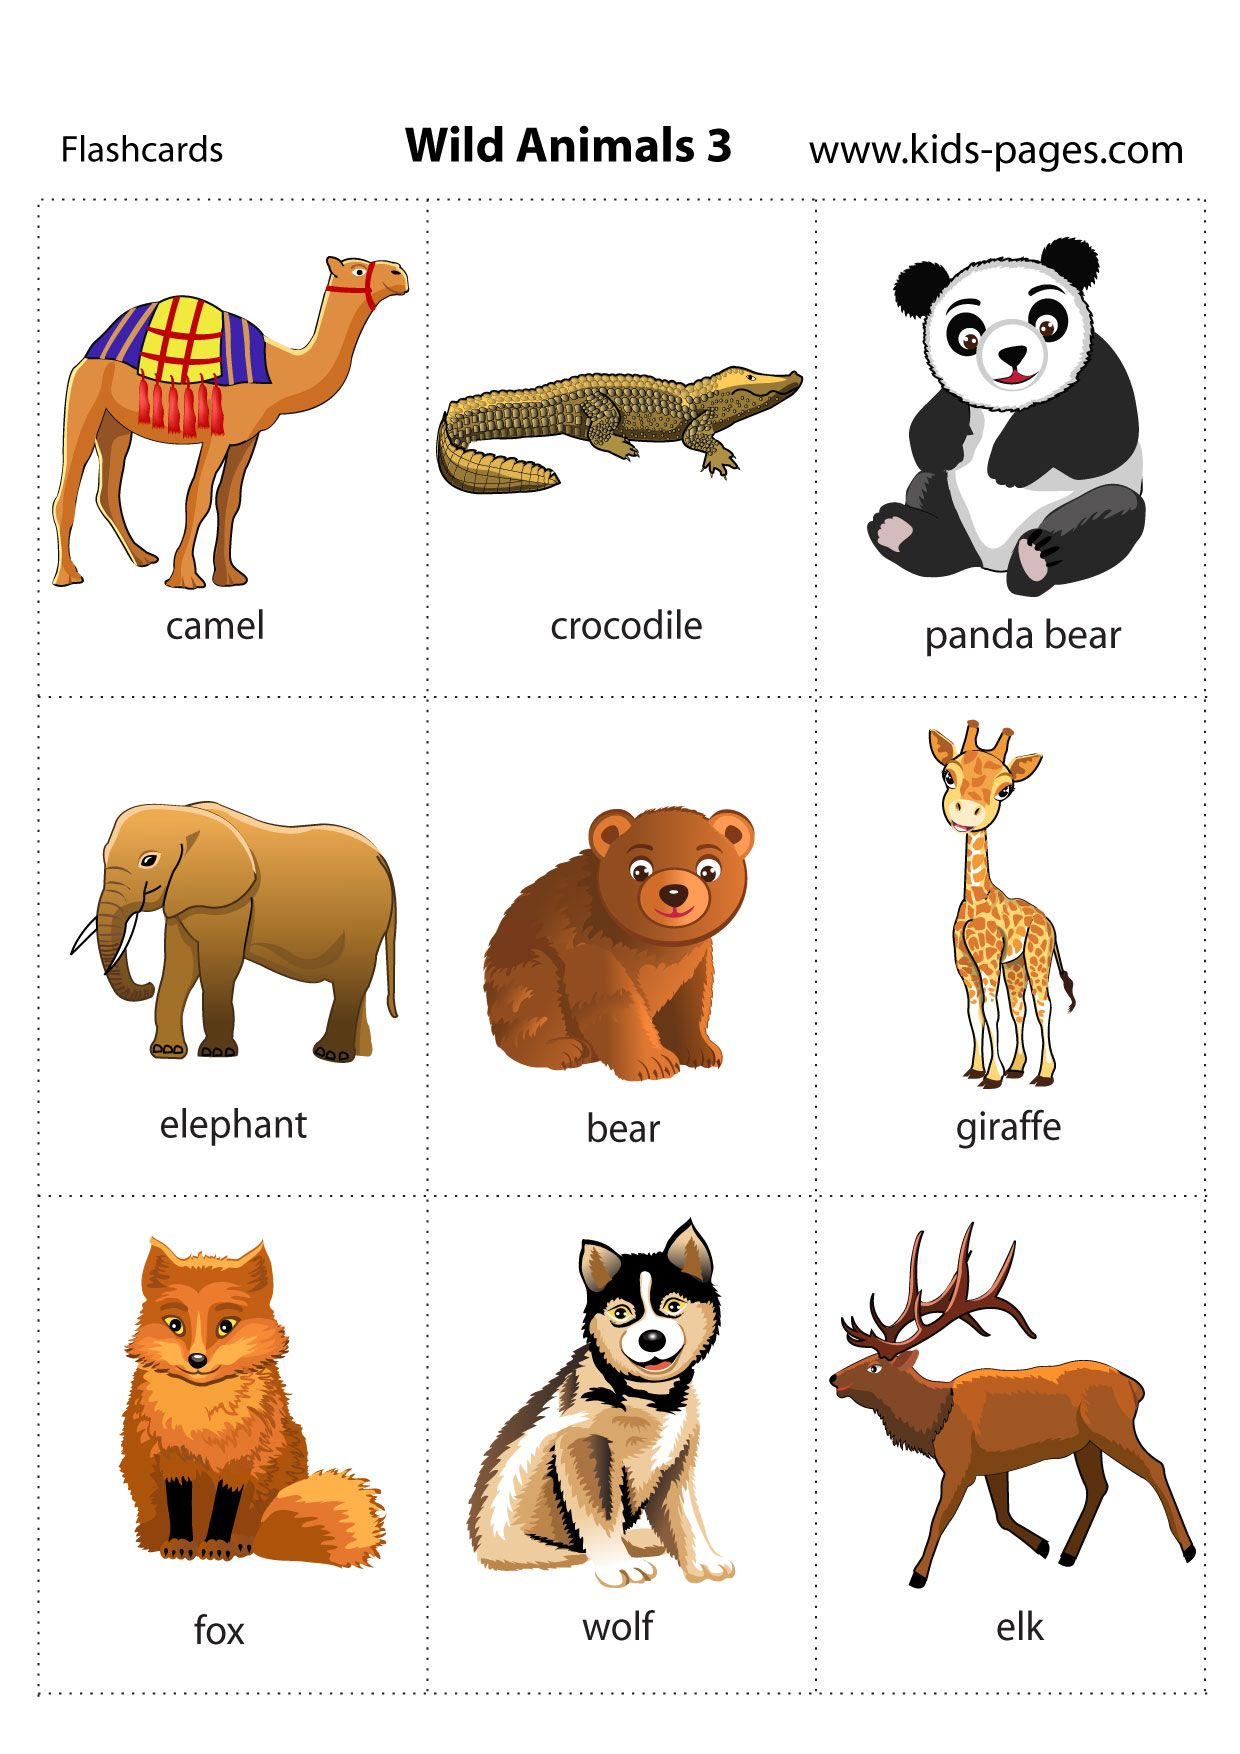 Printable Flashcard With Wild Animals For Parents And